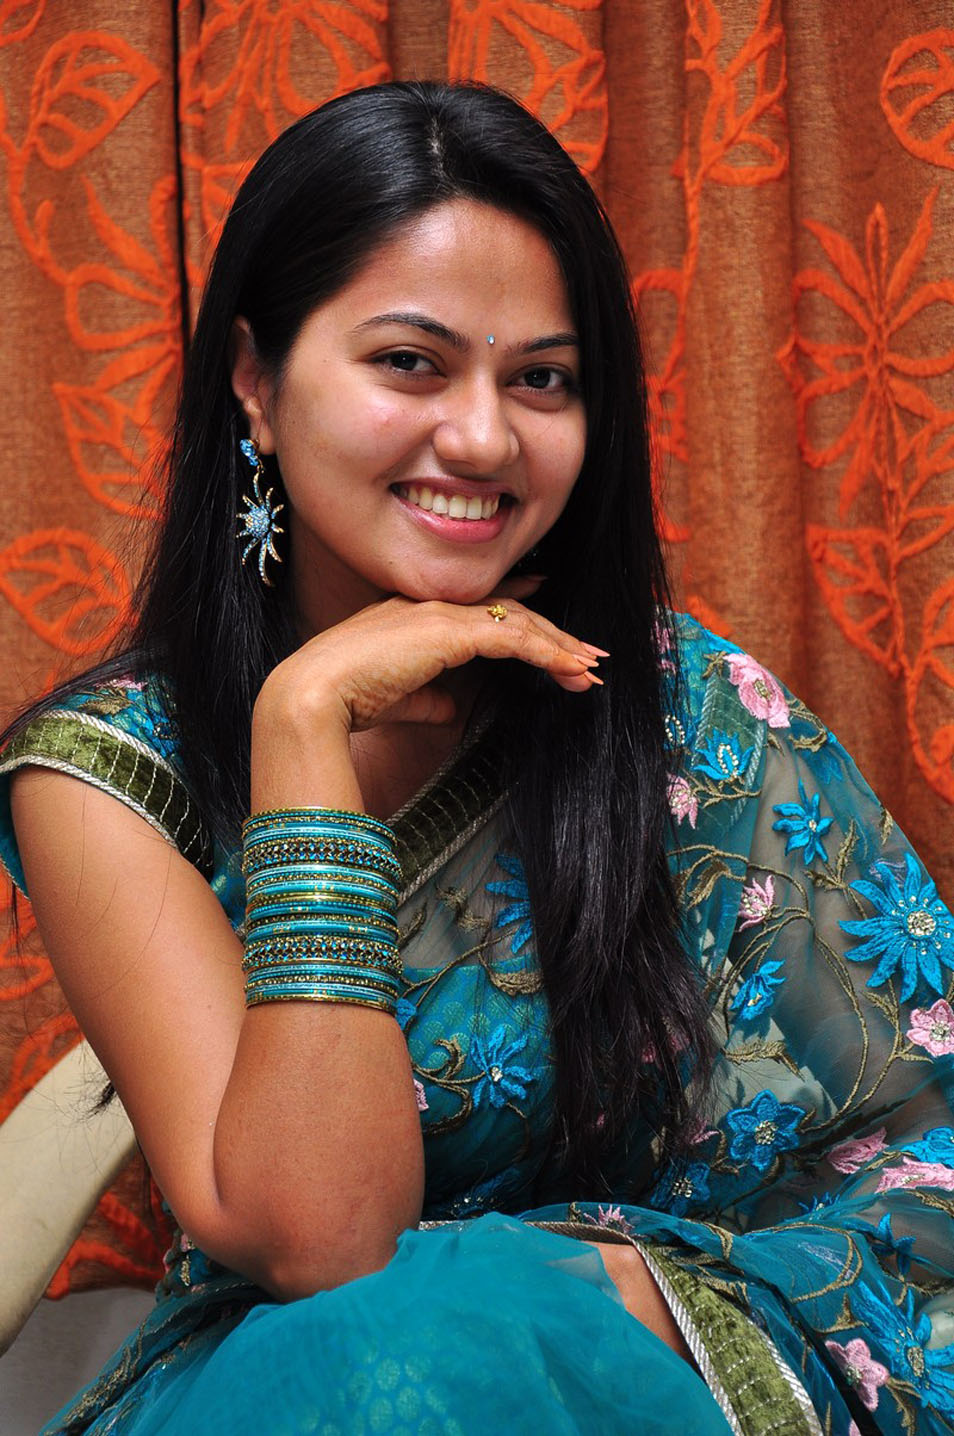 Telugu Hot Actress Pics, Hot Photos, Hot Pics, Hot -1434